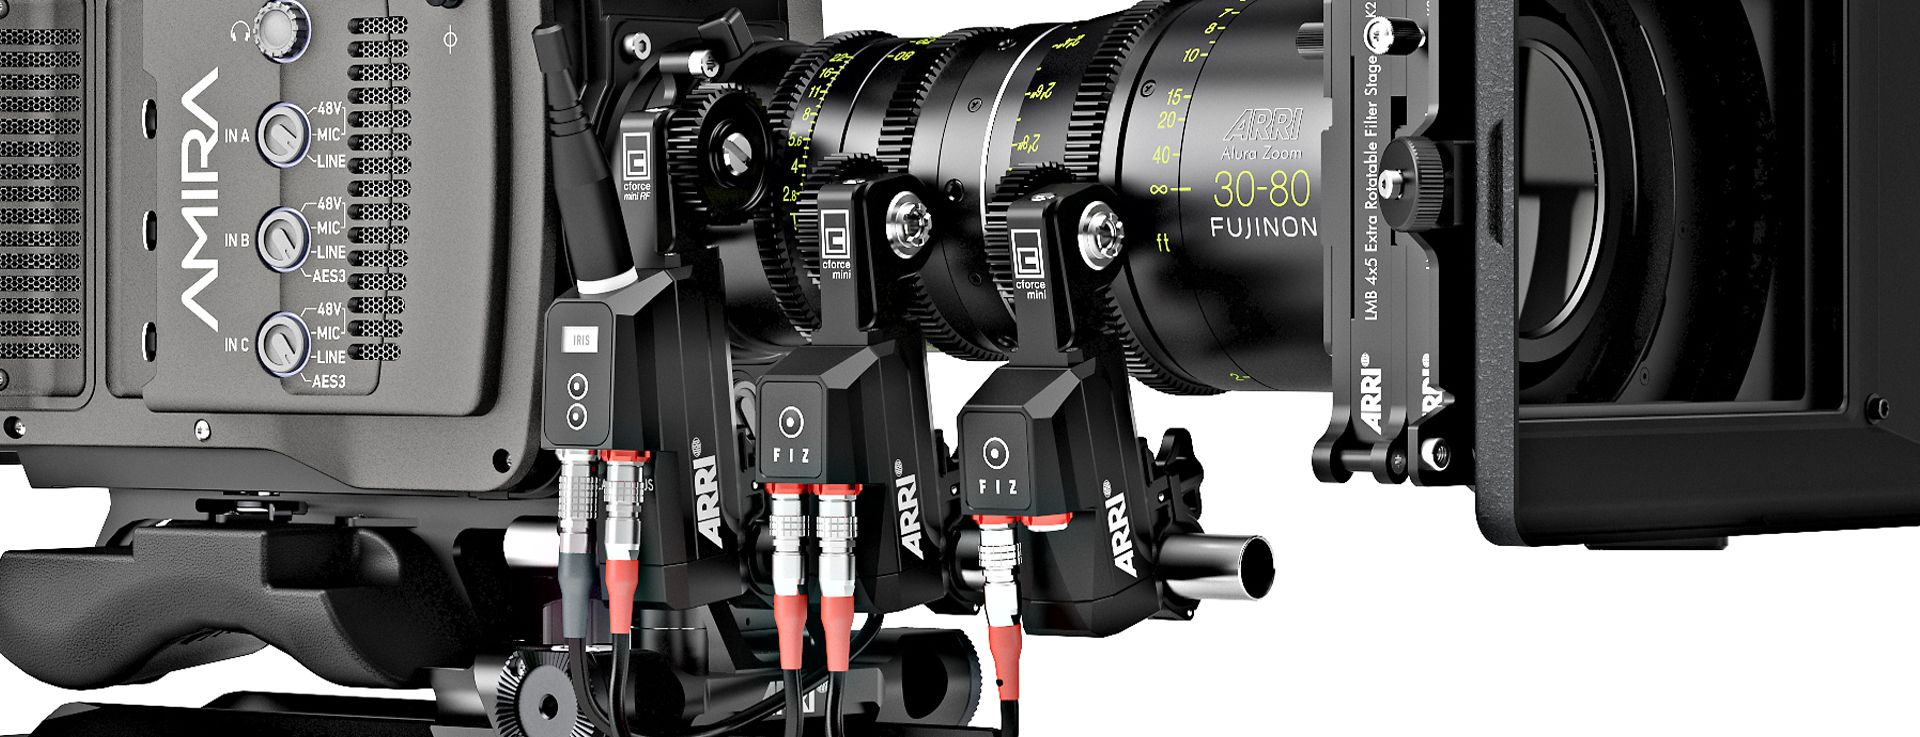 ARRI cforce Mini instalat pe camera